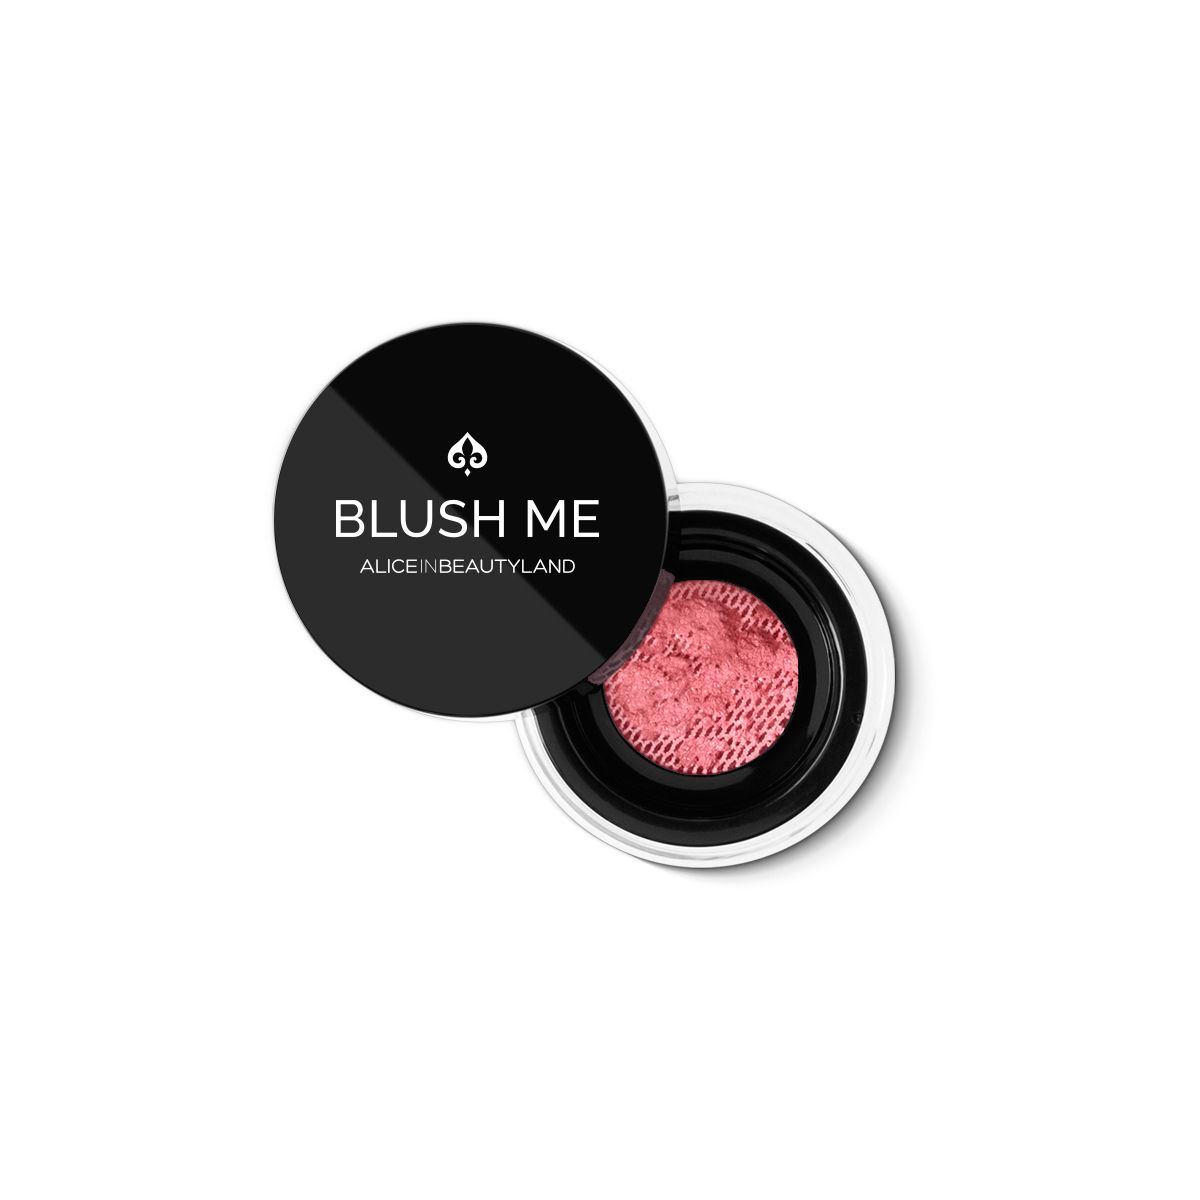 Blush Me de Alice in Beautyland color creative